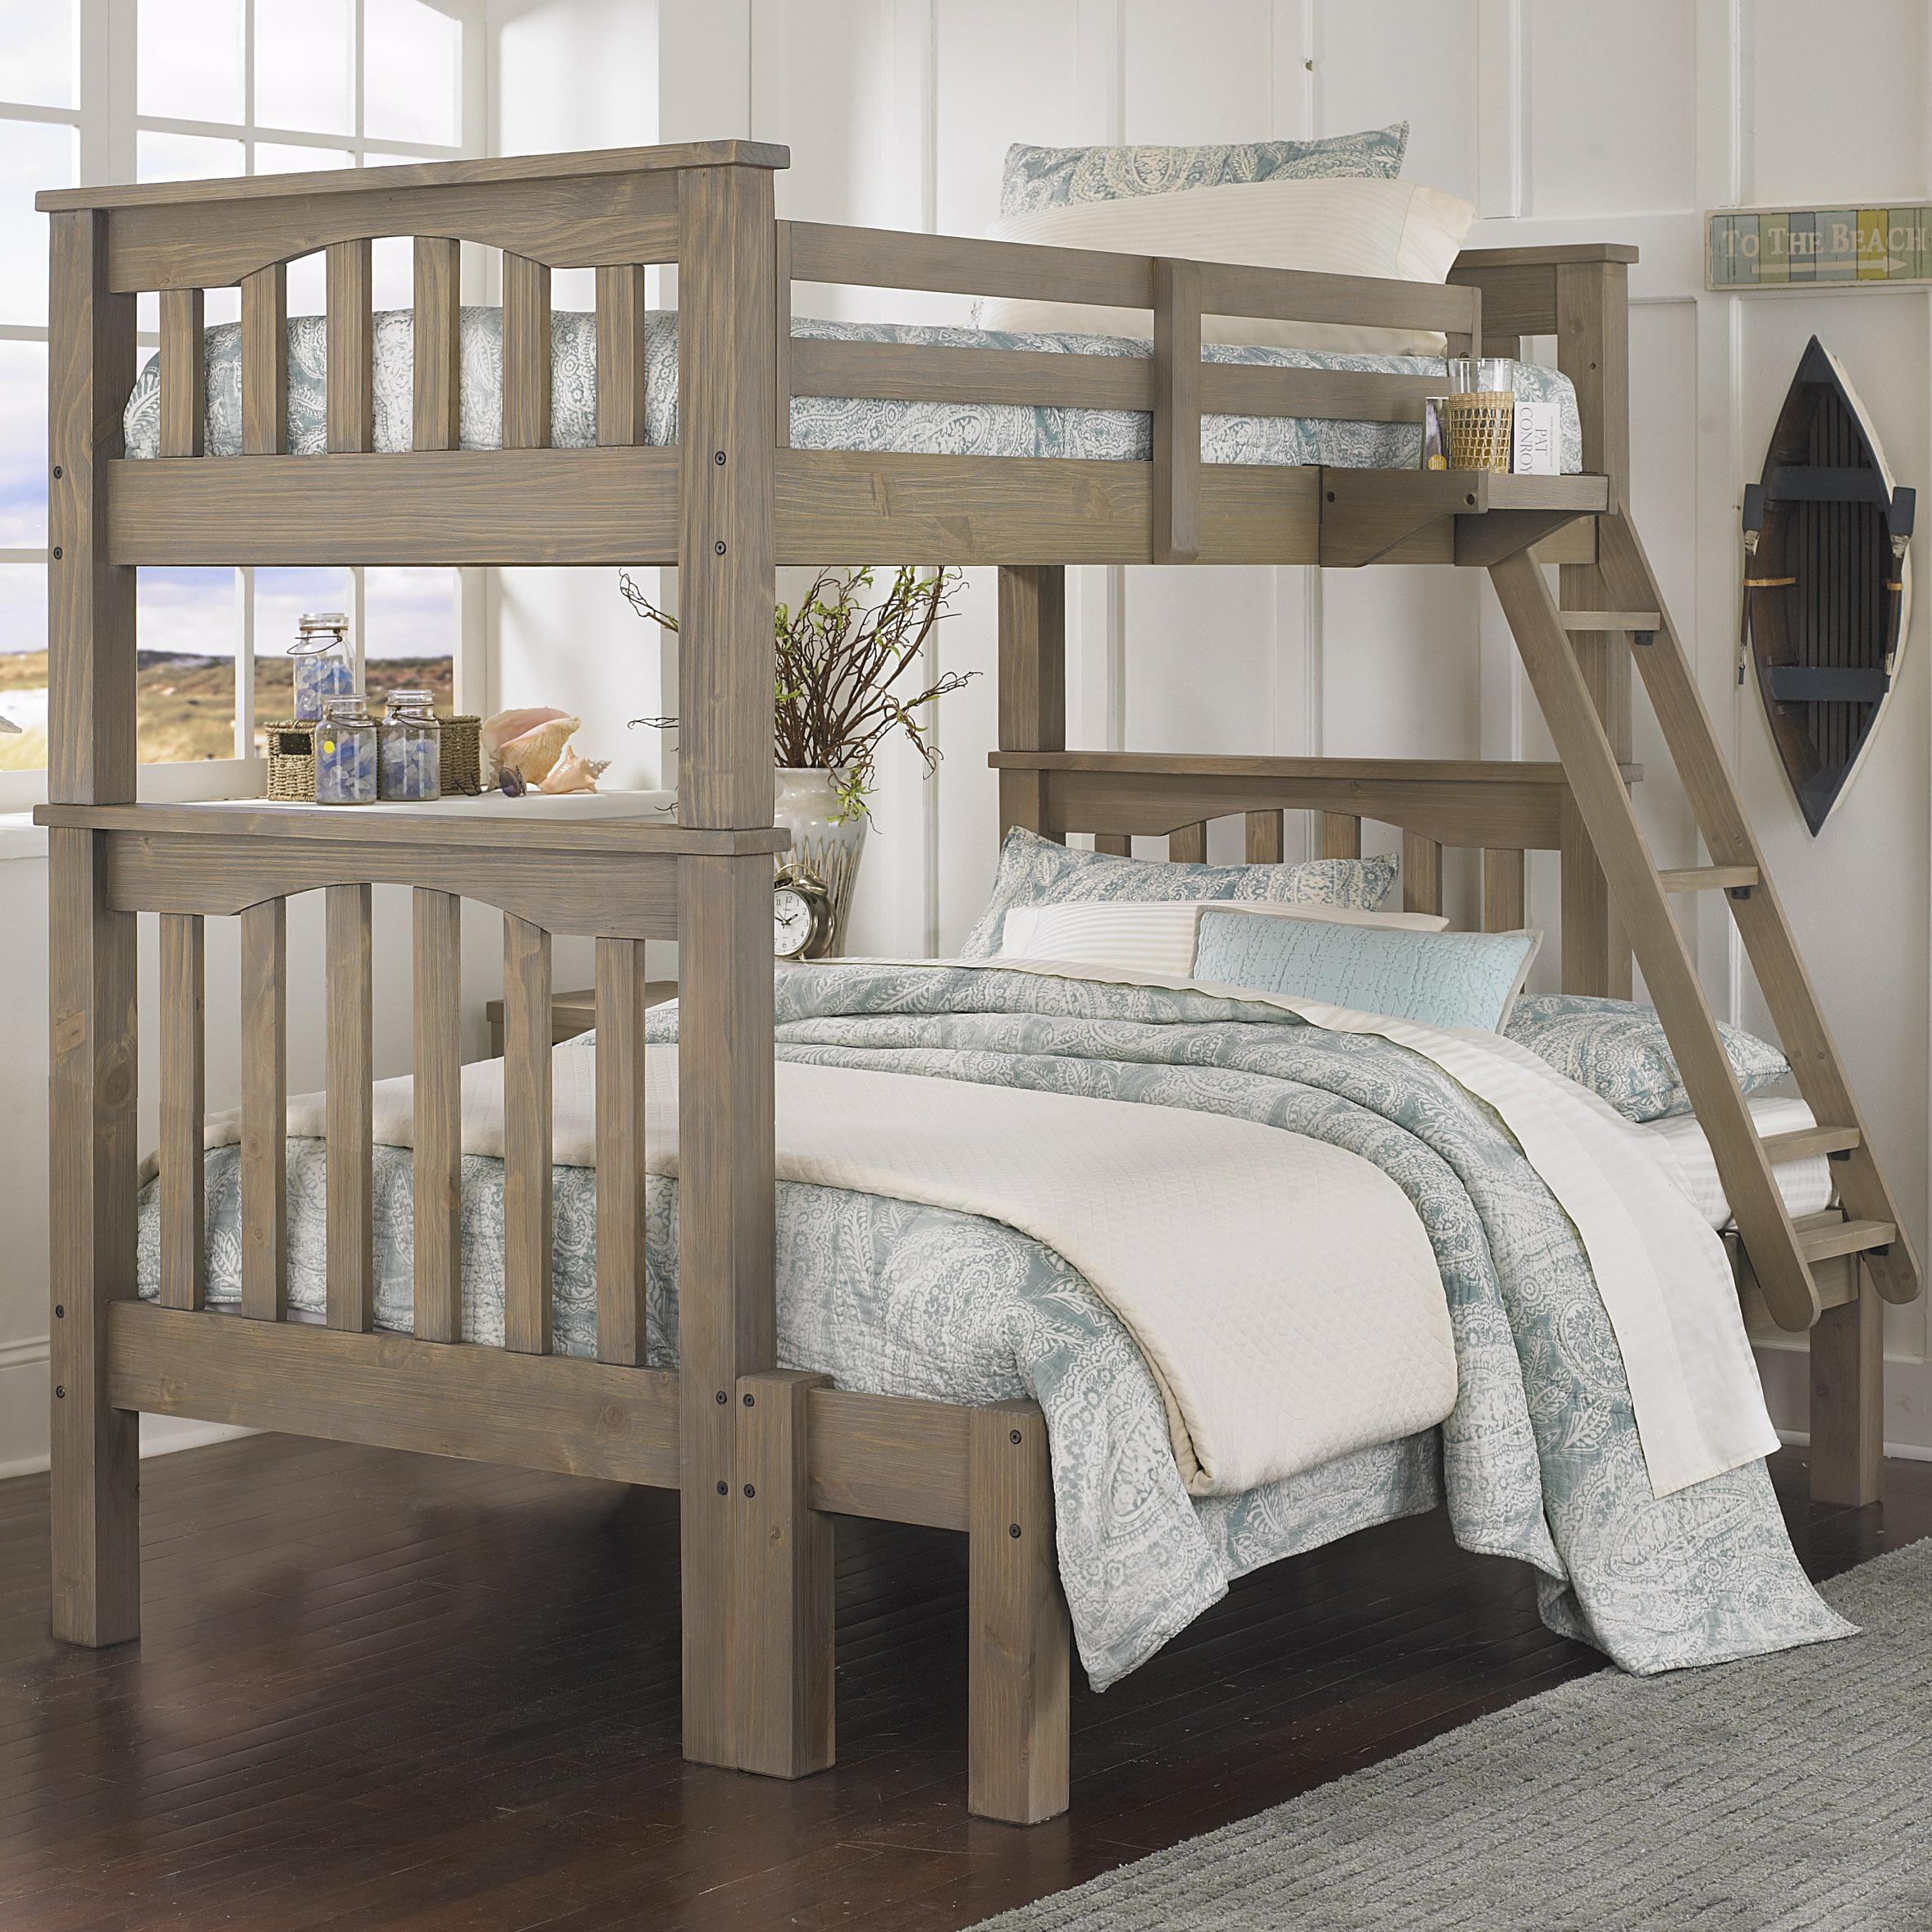 loft bed mosca childrens bedroom s homes ideas remarkable child